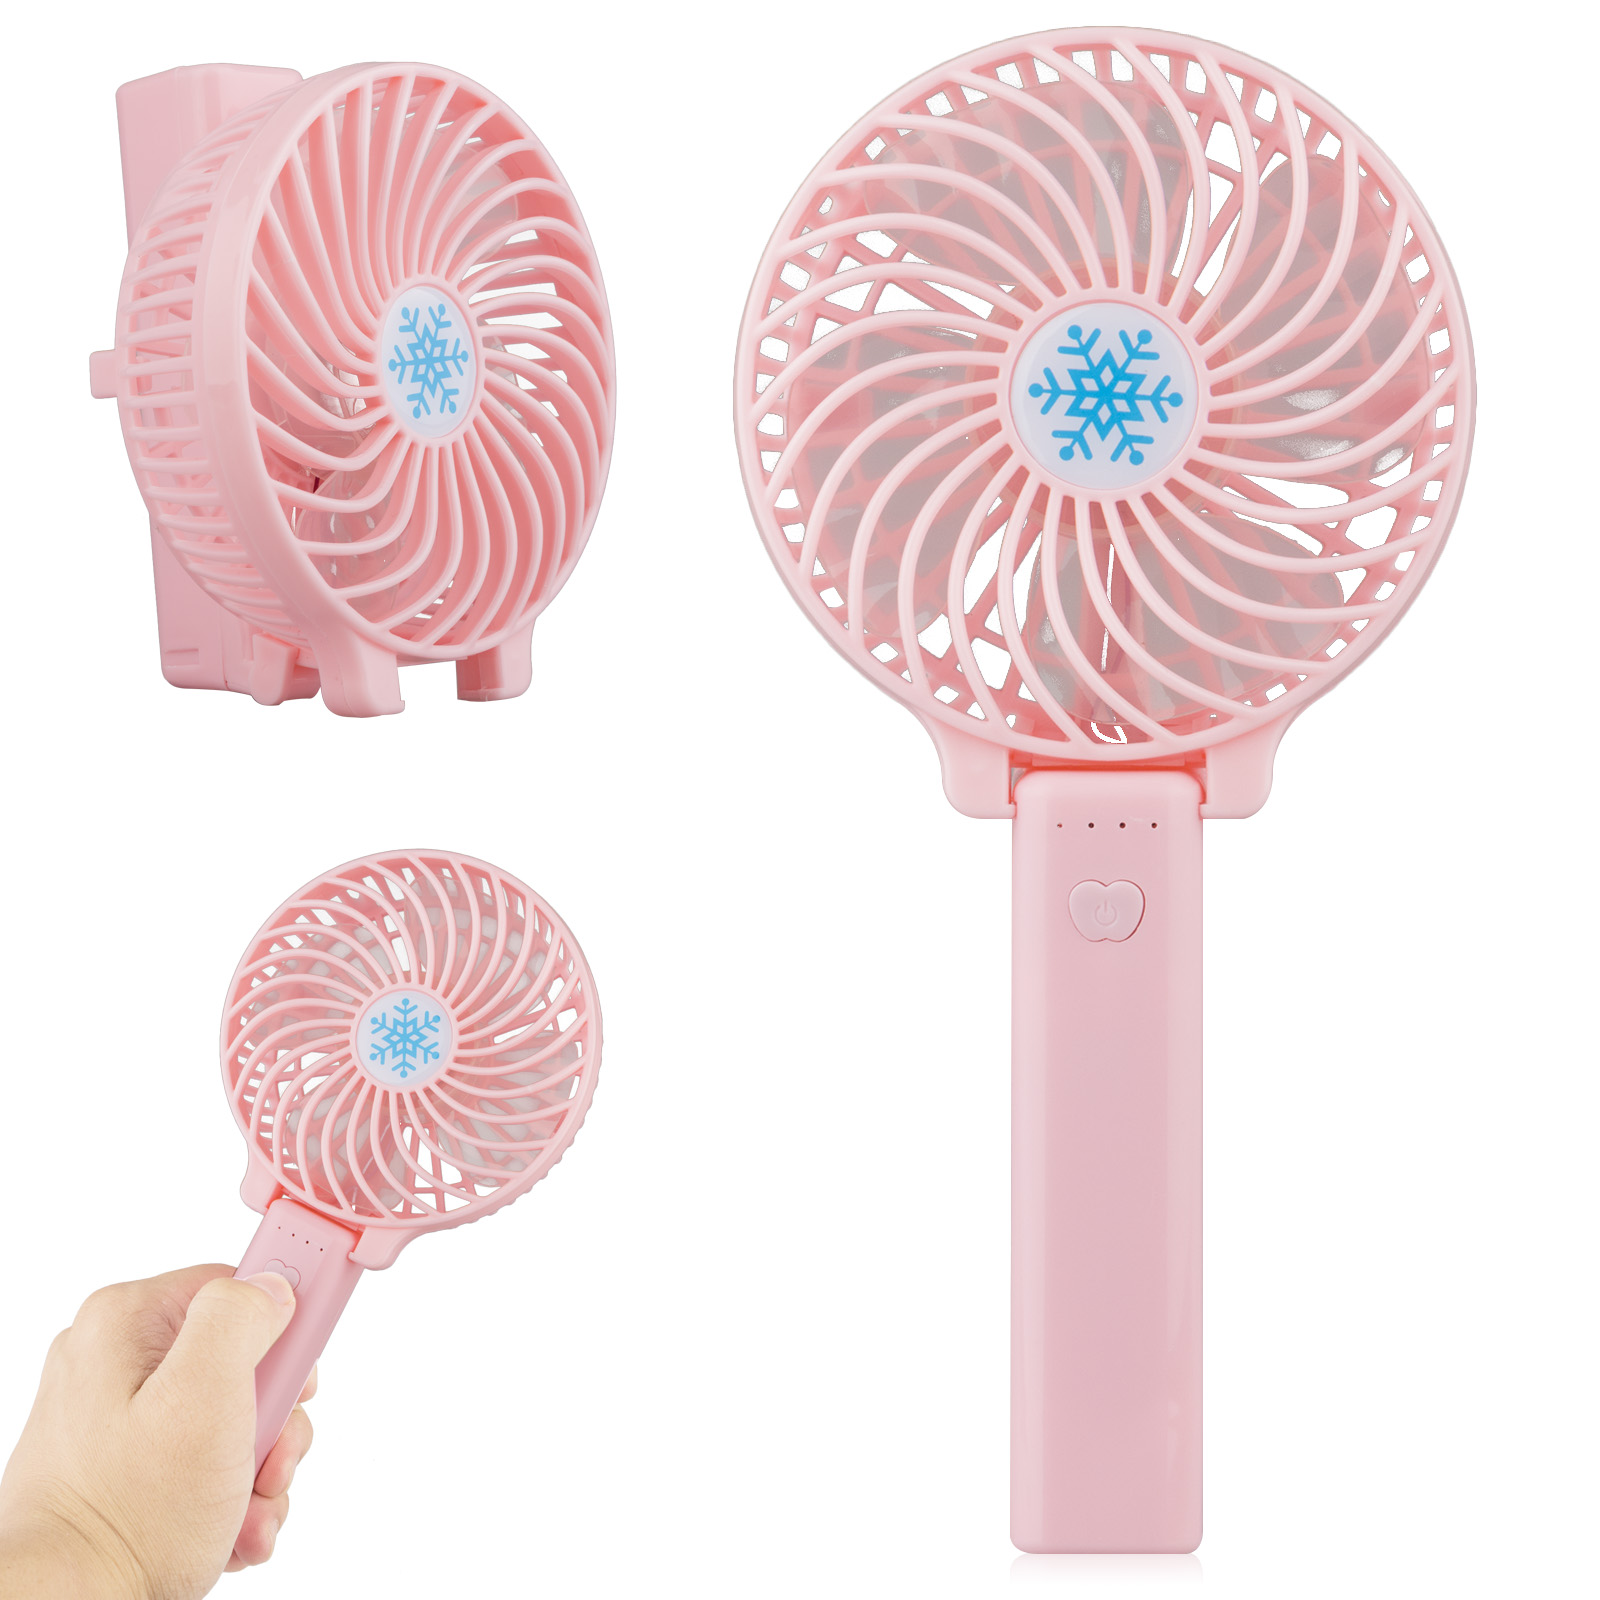 Mini Handheld Fan, with USB Rechargeable Battery, Foldable Personal Portable